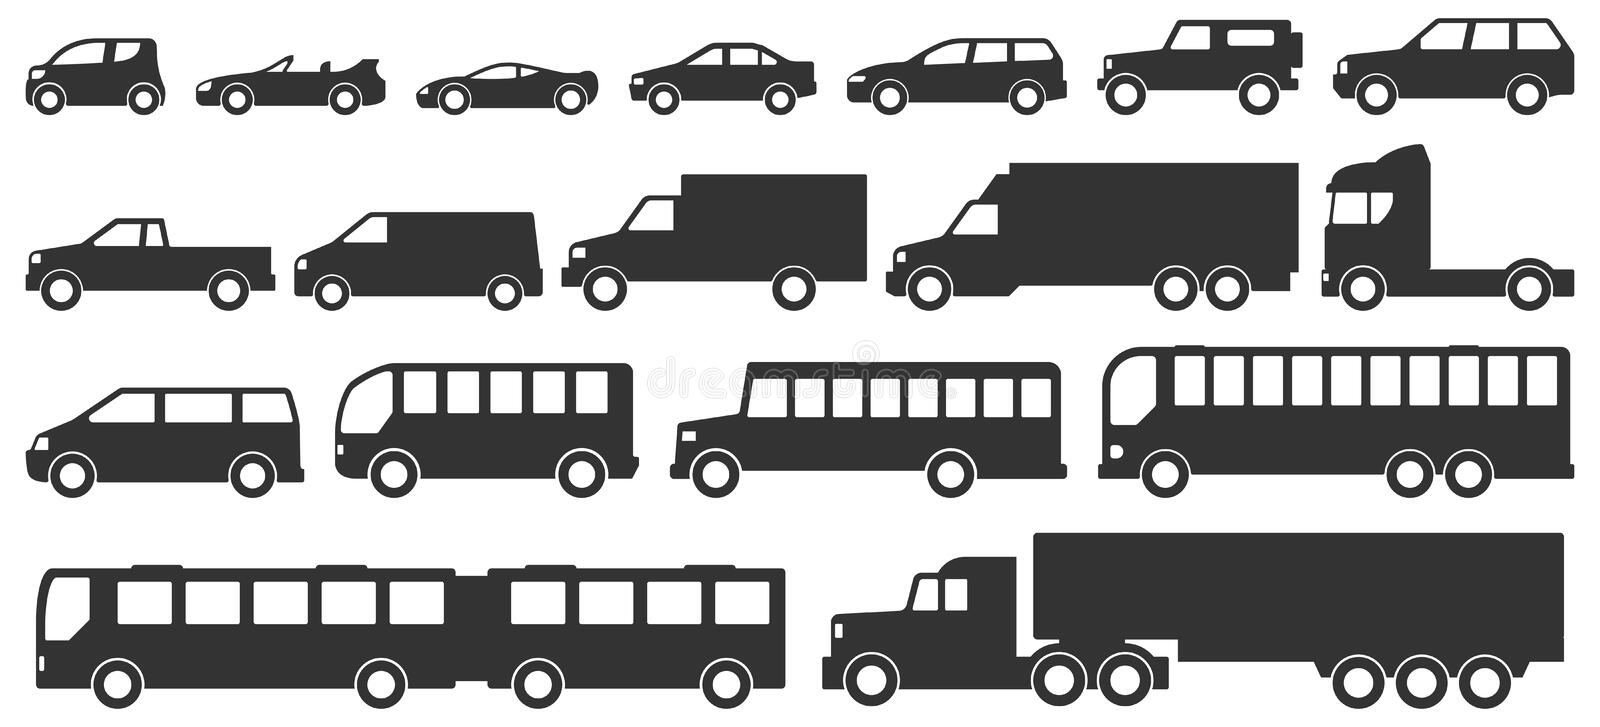 Cars and truck silhouettes isolated on white background stock illustration